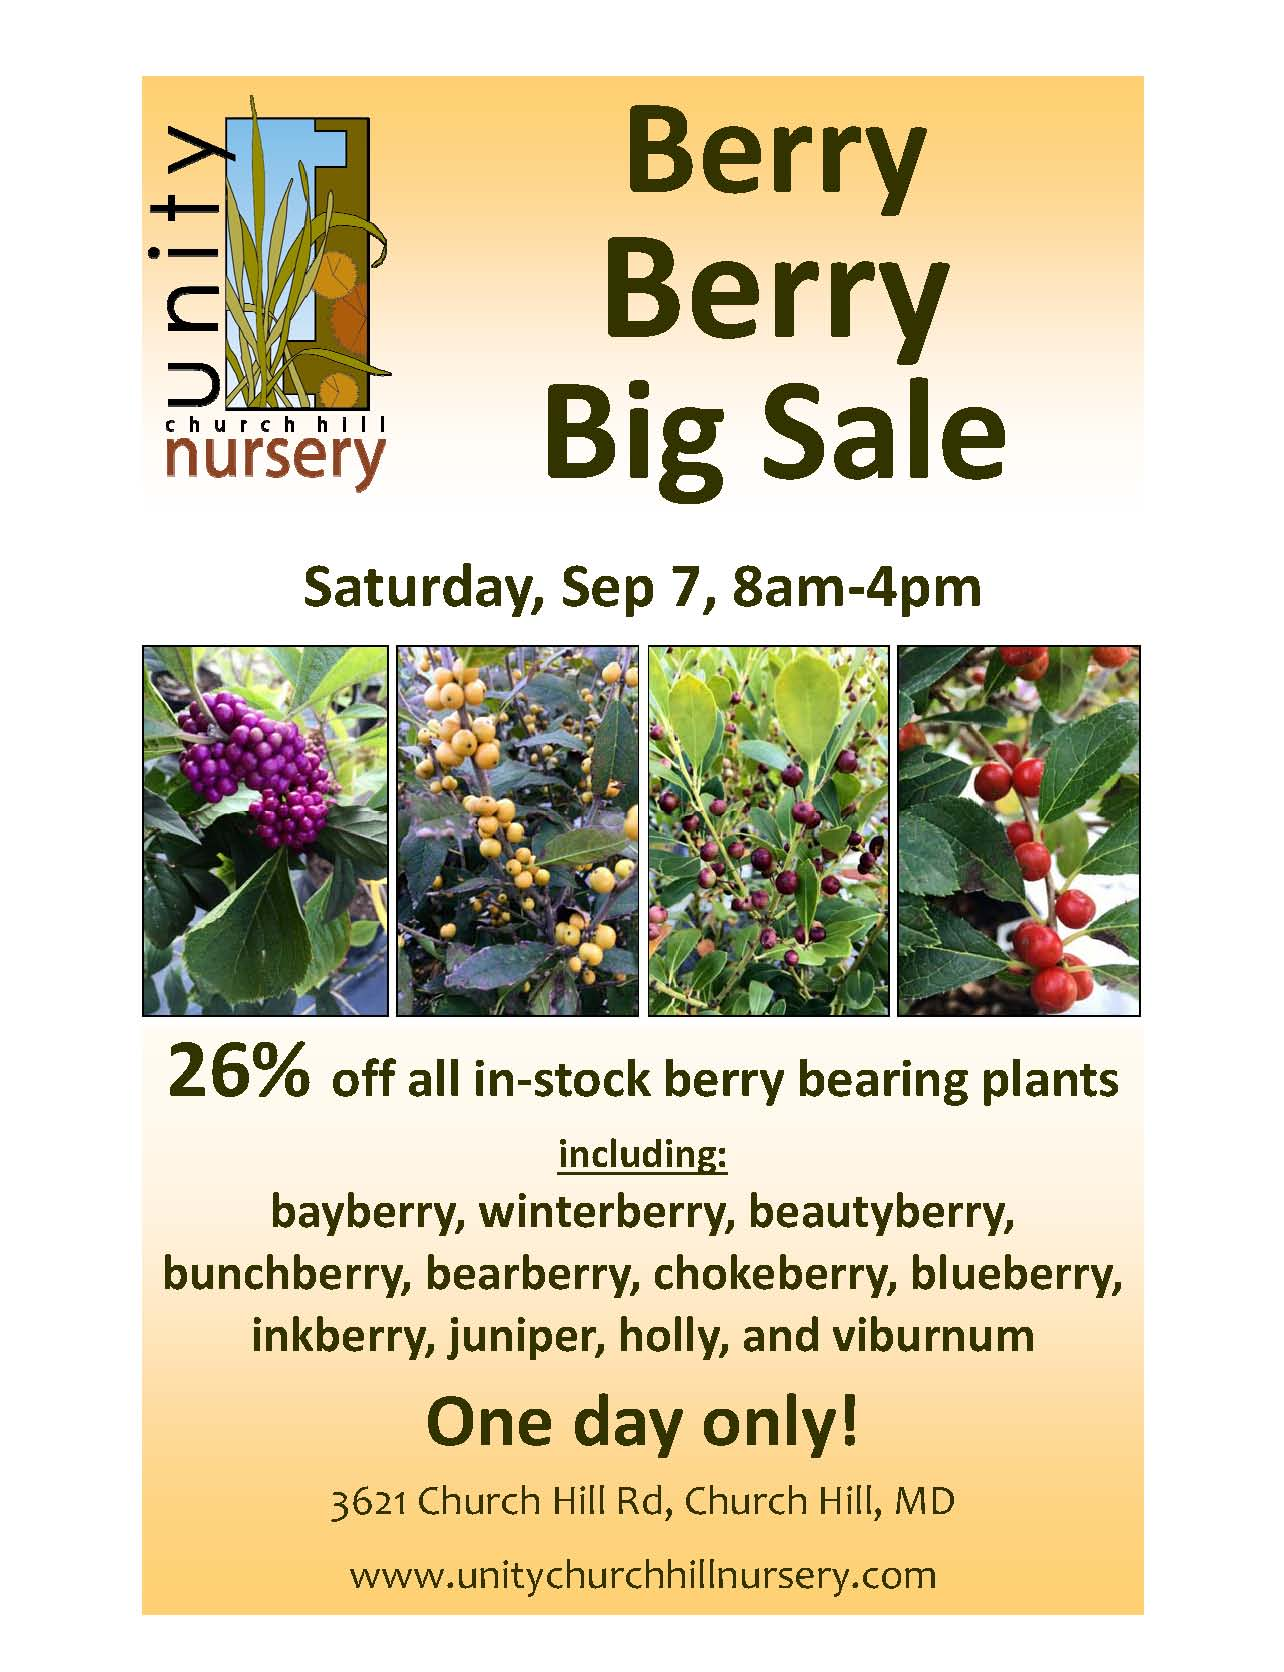 Berry Berry Big Sale 26 Off All Berry Bearing Plants